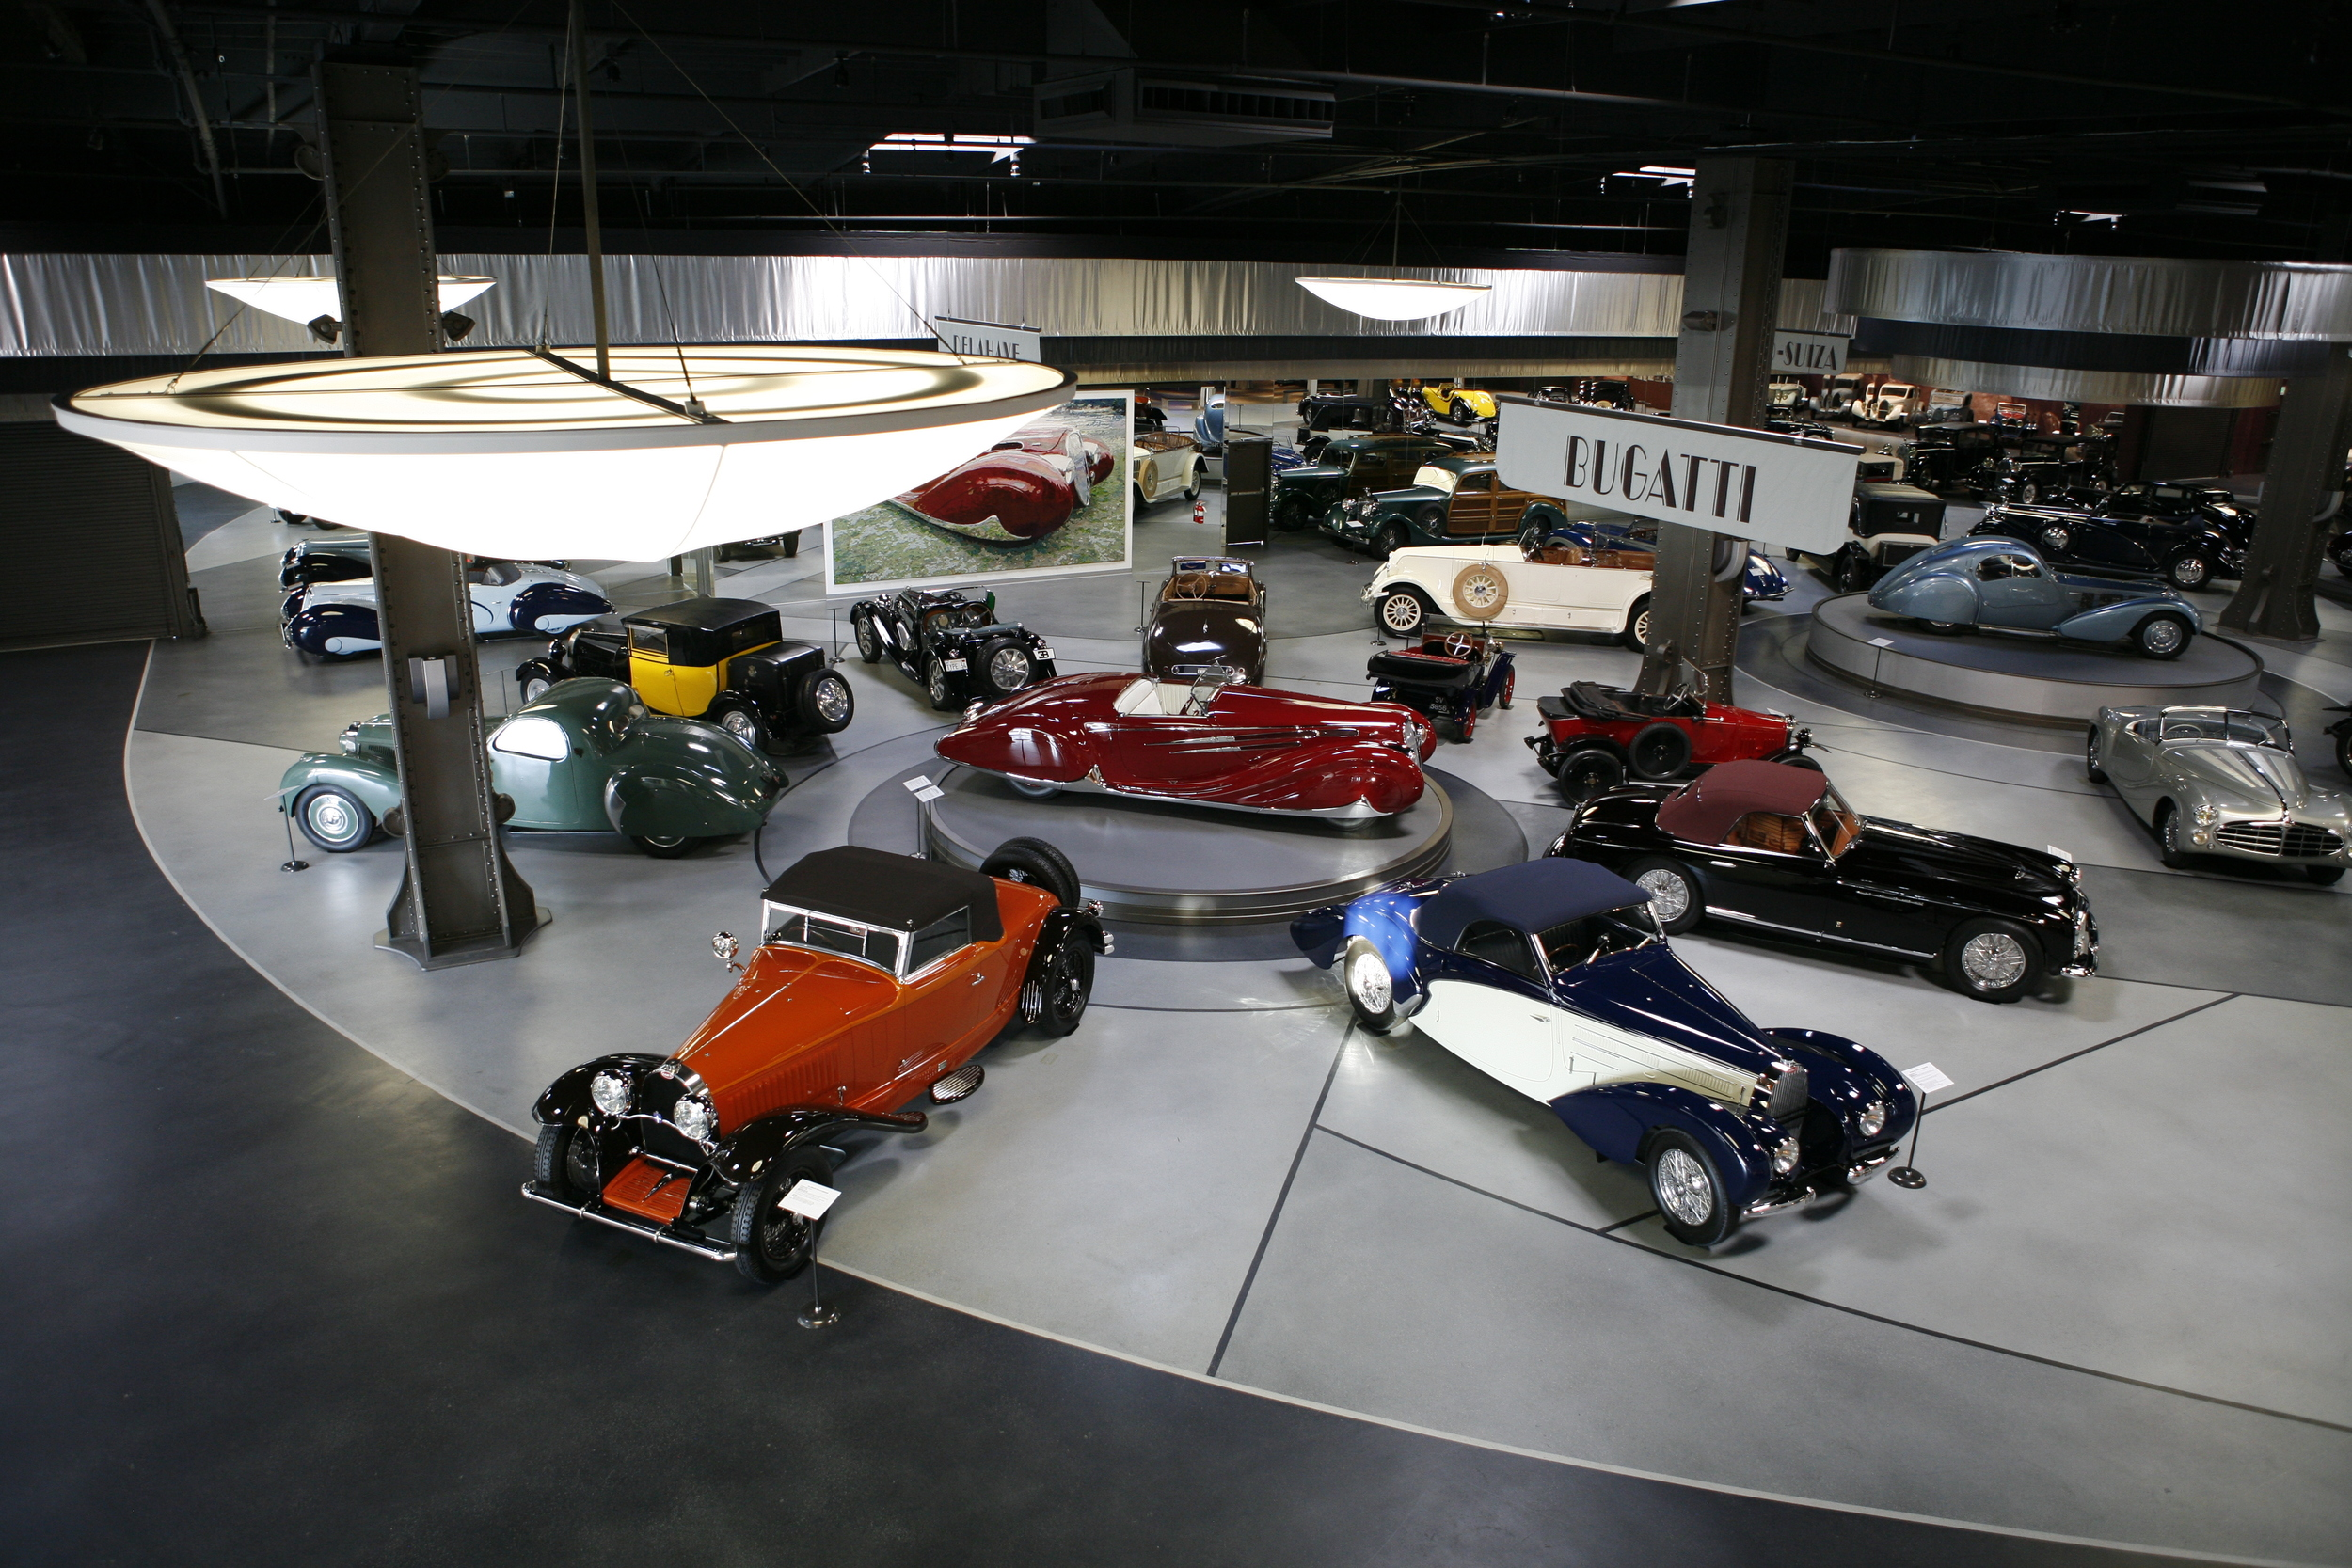 Jill Brooke Author At Galerie - Best car museums in us